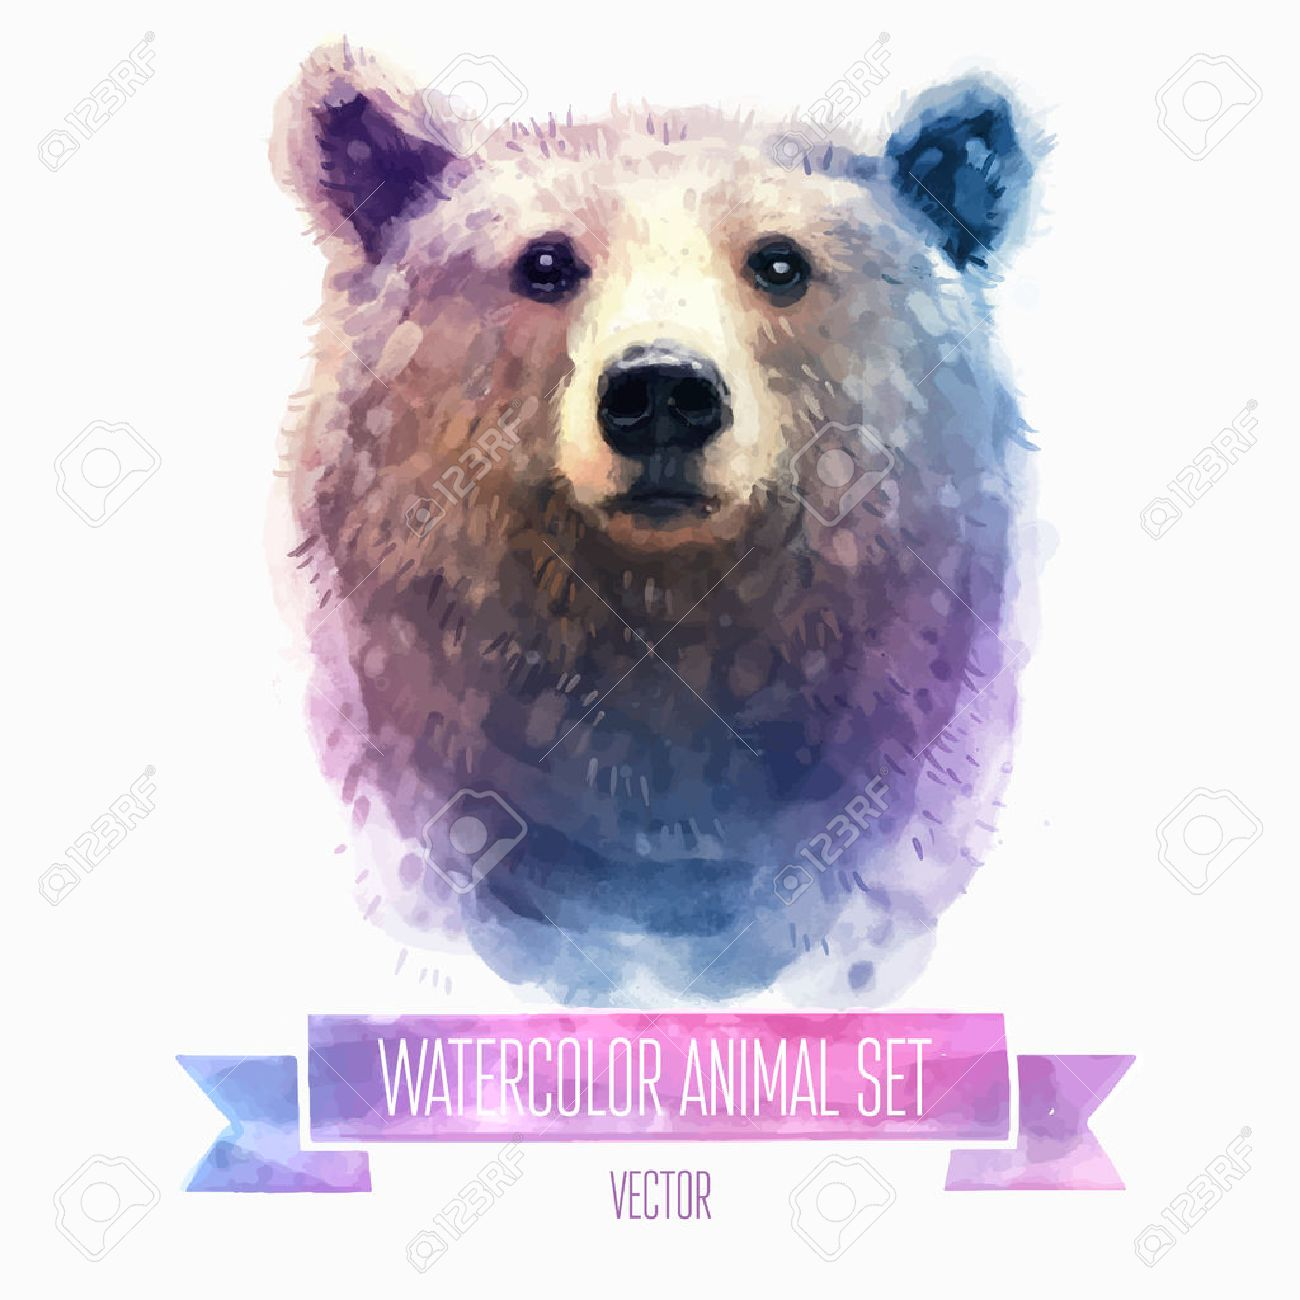 vector set of watercolor illustrations cute bear royalty free